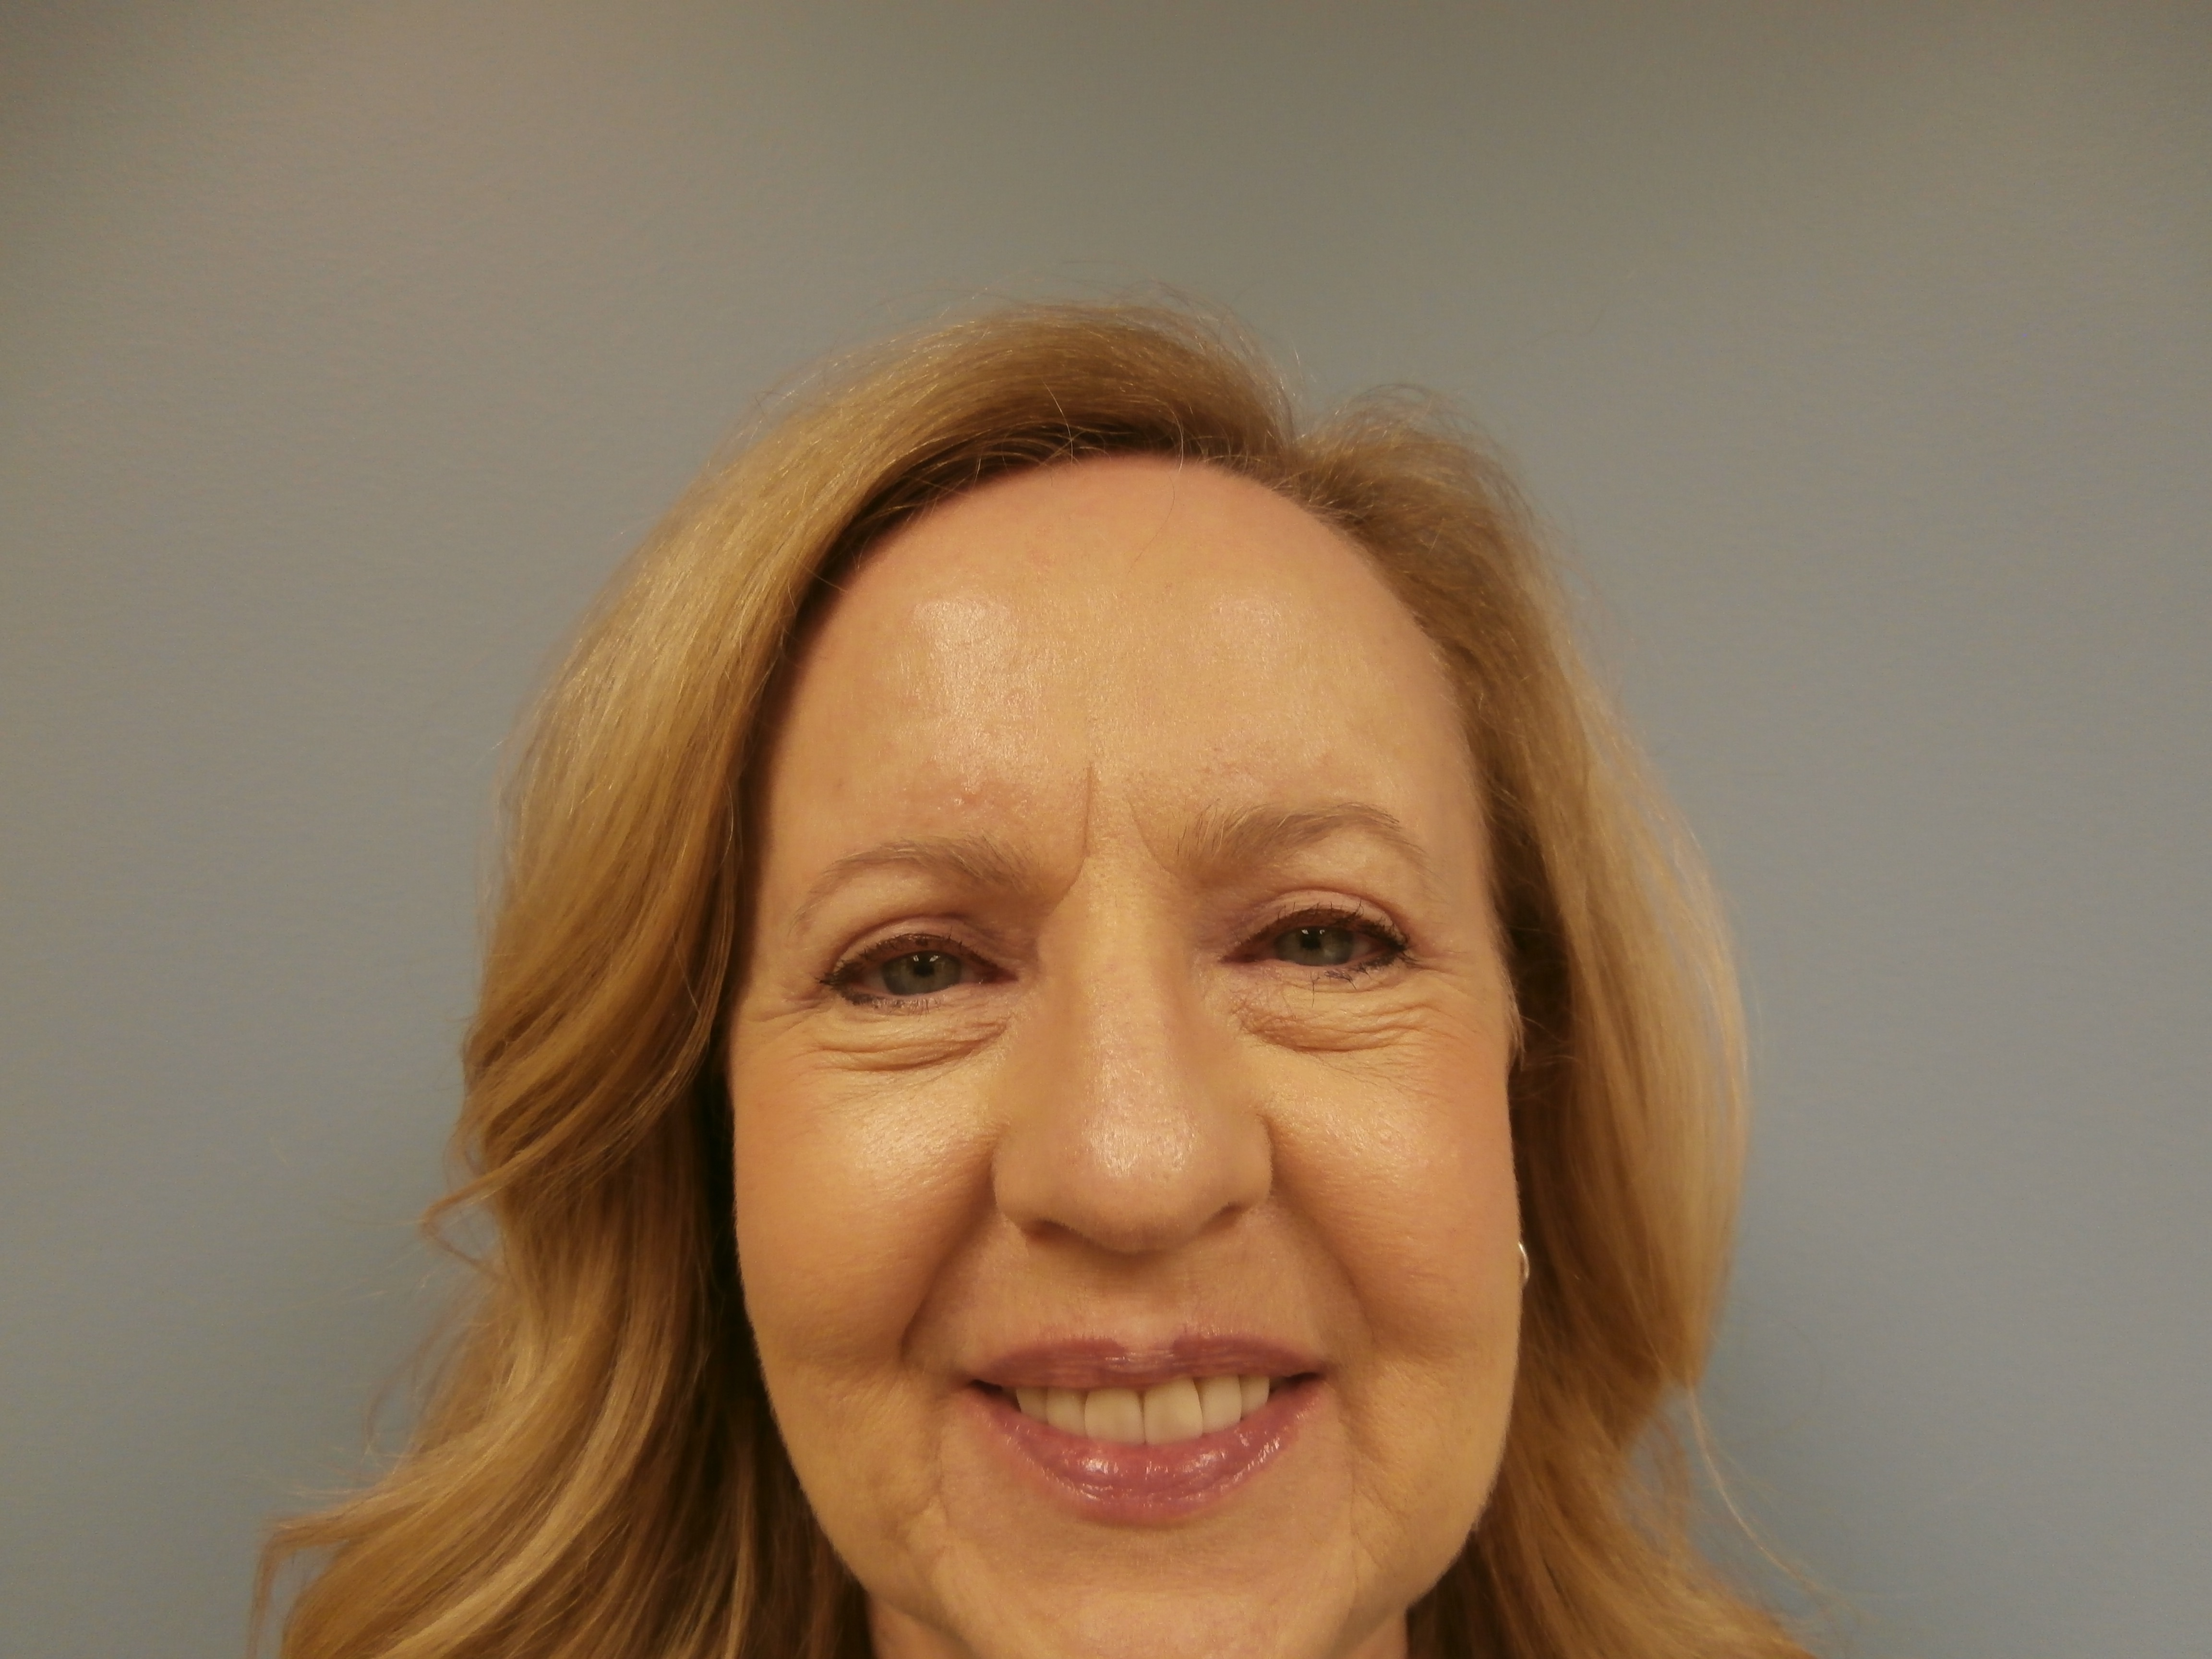 Eyelid Lift with Dr. Rocheford, Woodbury, MN